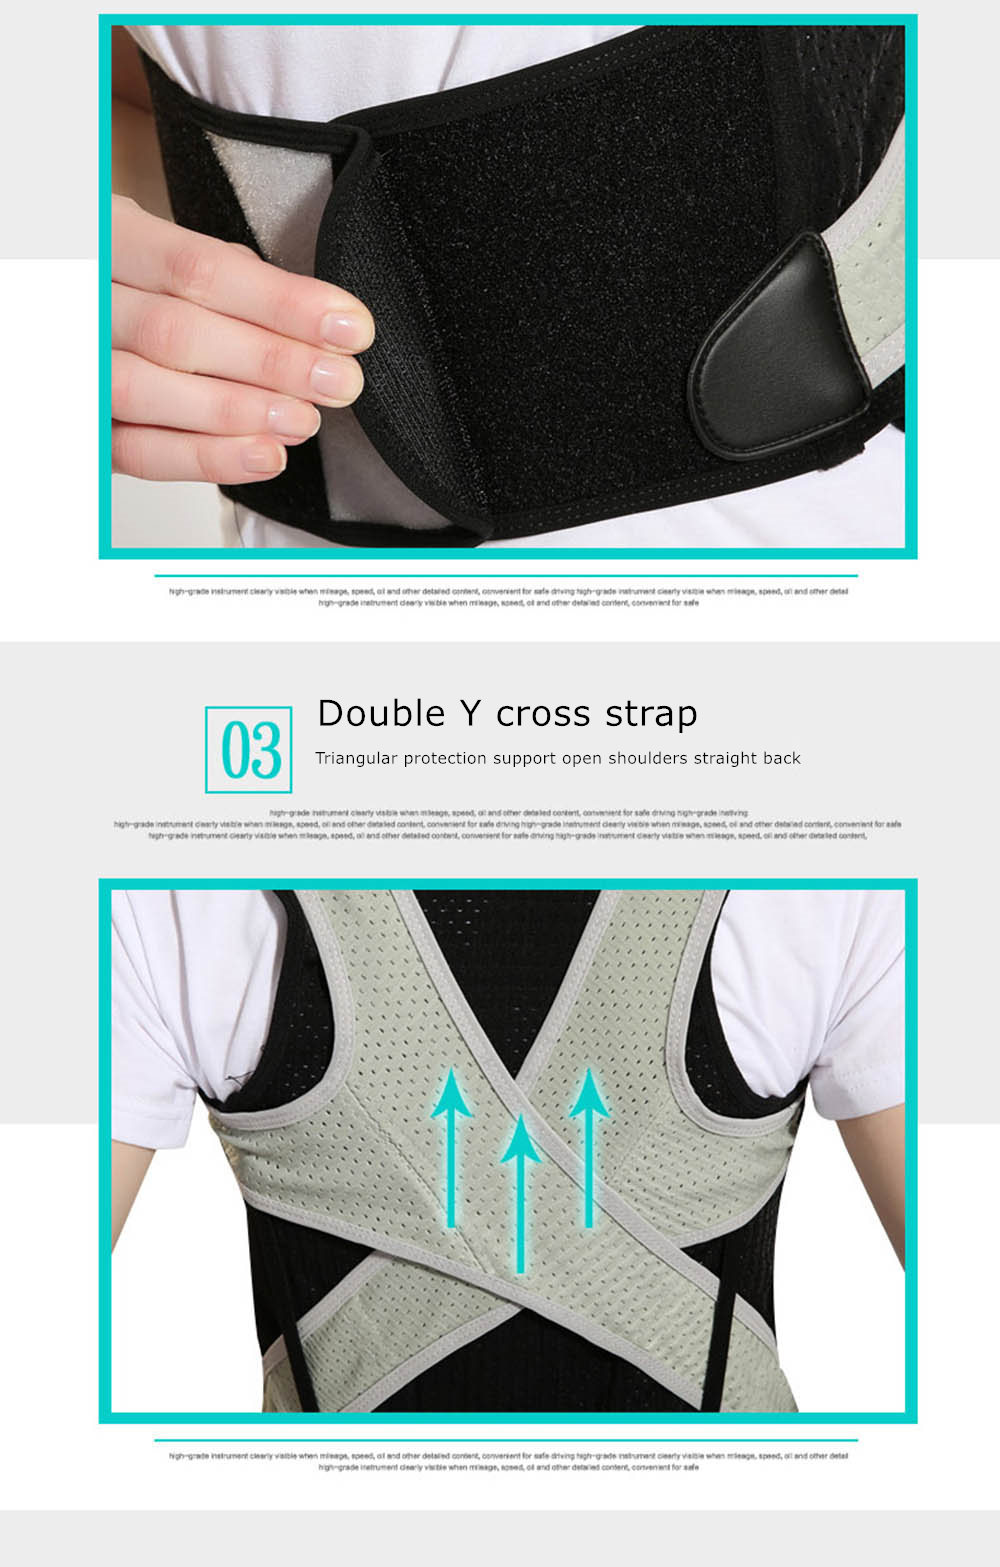 Tlinna Posture Corrector Belt with Adjustable Dual Strap Design to Get Perfect and Confident Body Posture Suitable to Wear Under or Over Clothing 31